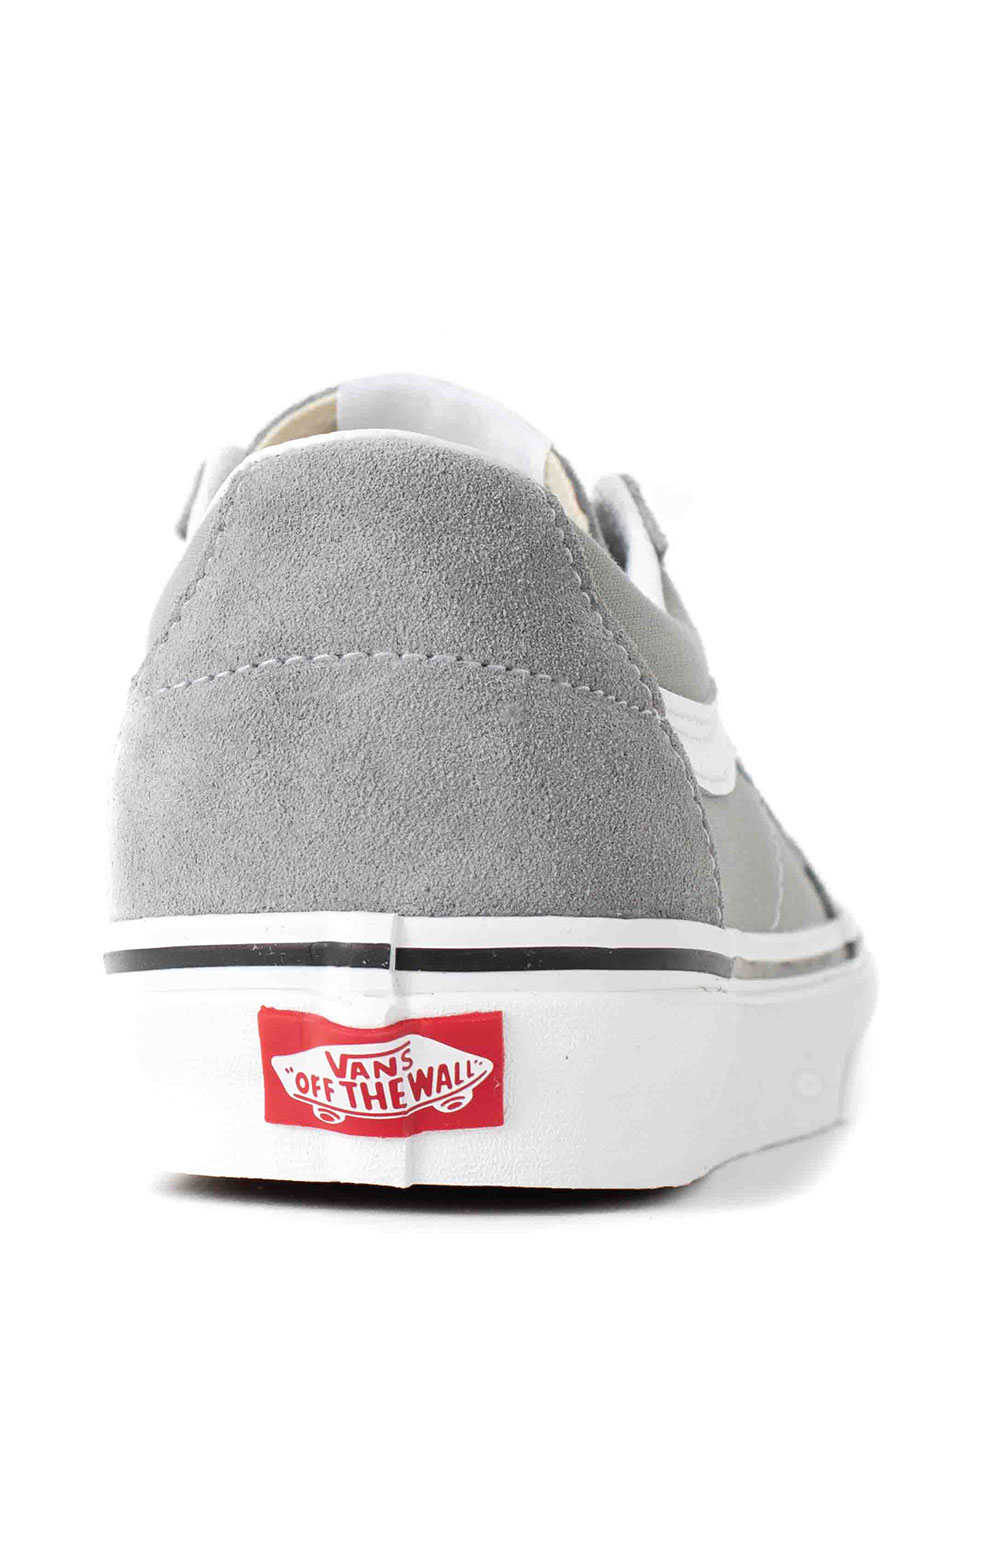 (UUKIYP) Sk8-Low Shoes - Drizzle/True White  5